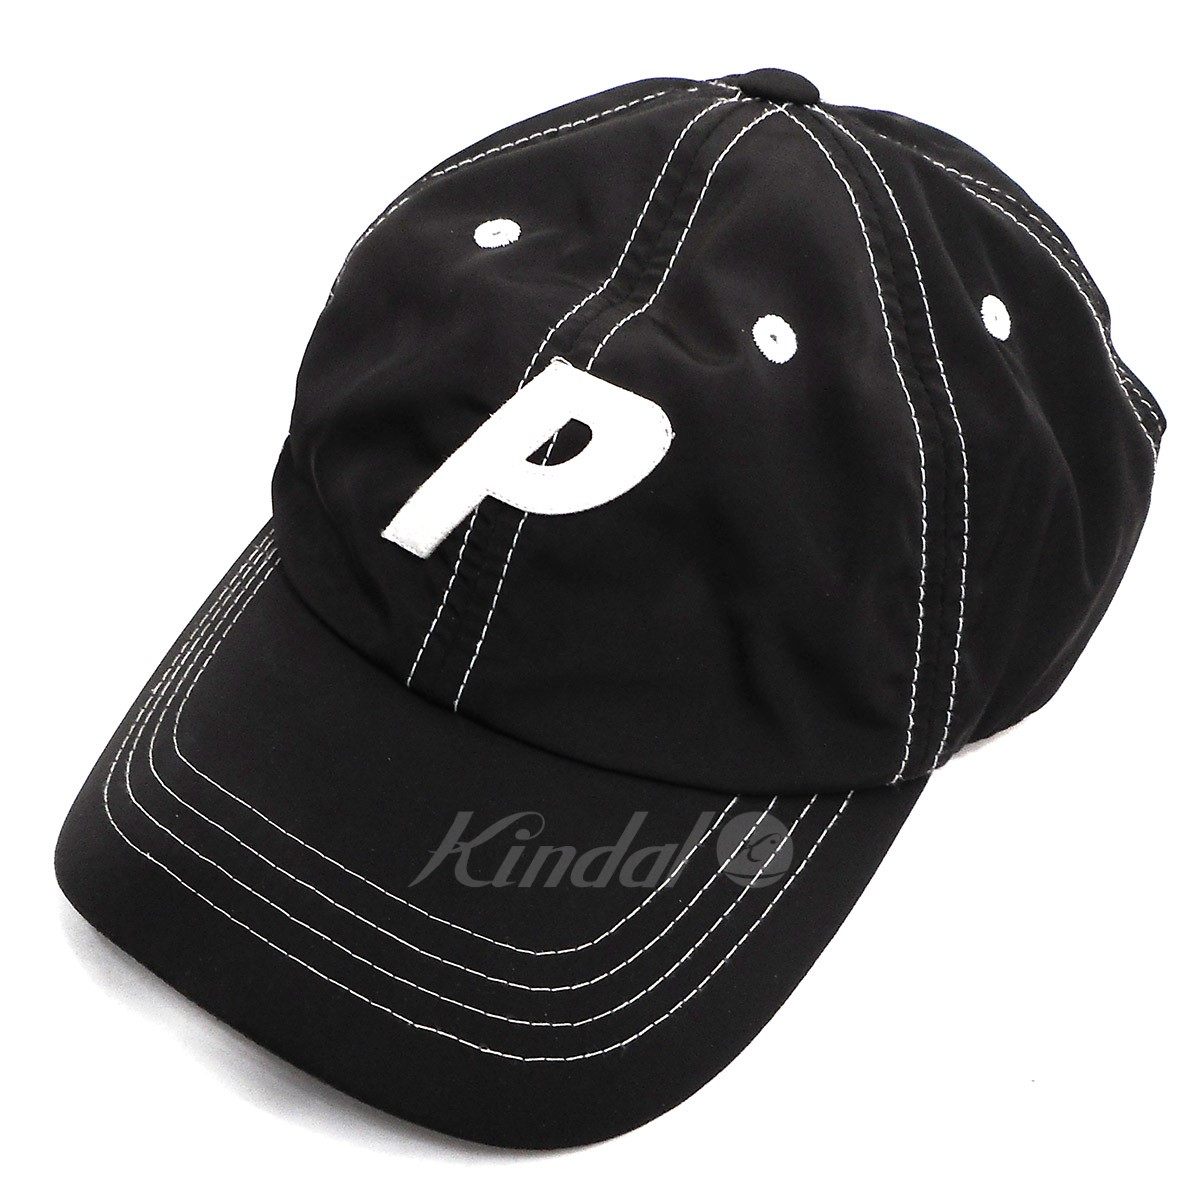 b4ae030a7b7 kindal  PALACE P 6-PANEL logo baseball cap black (palace)